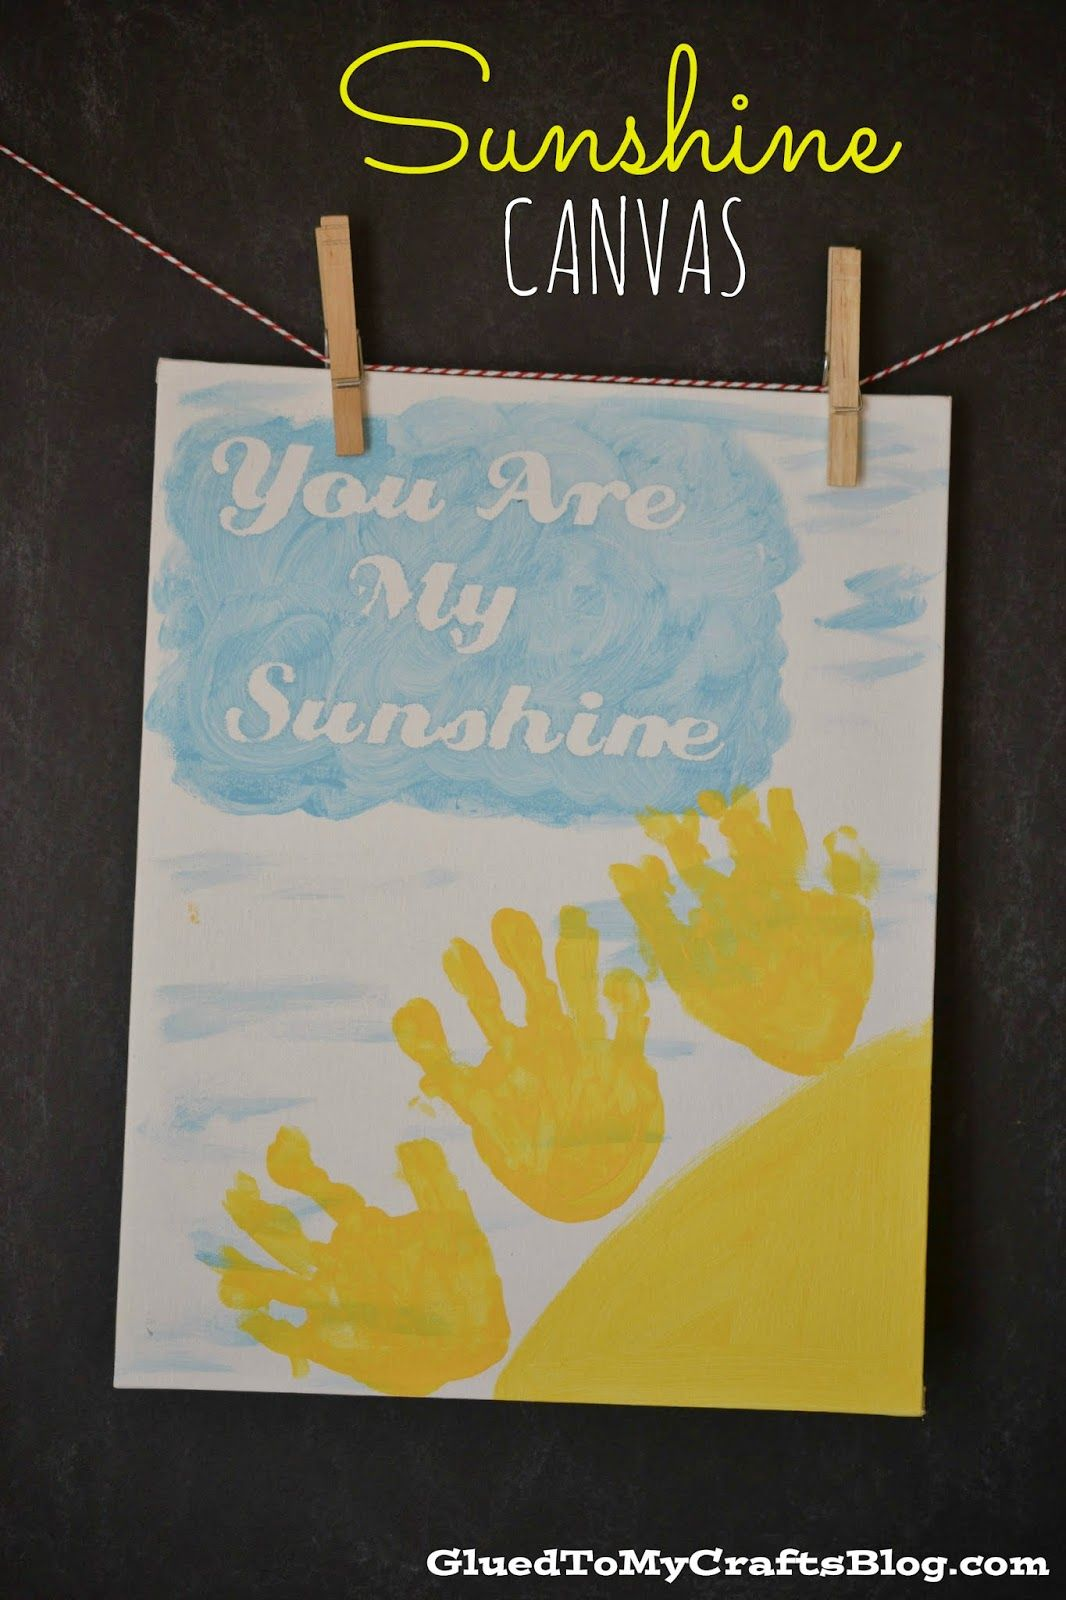 Canvas Craft Ideas For Kids Part - 19: Handprint Sunshine Canvas - Kid Craft